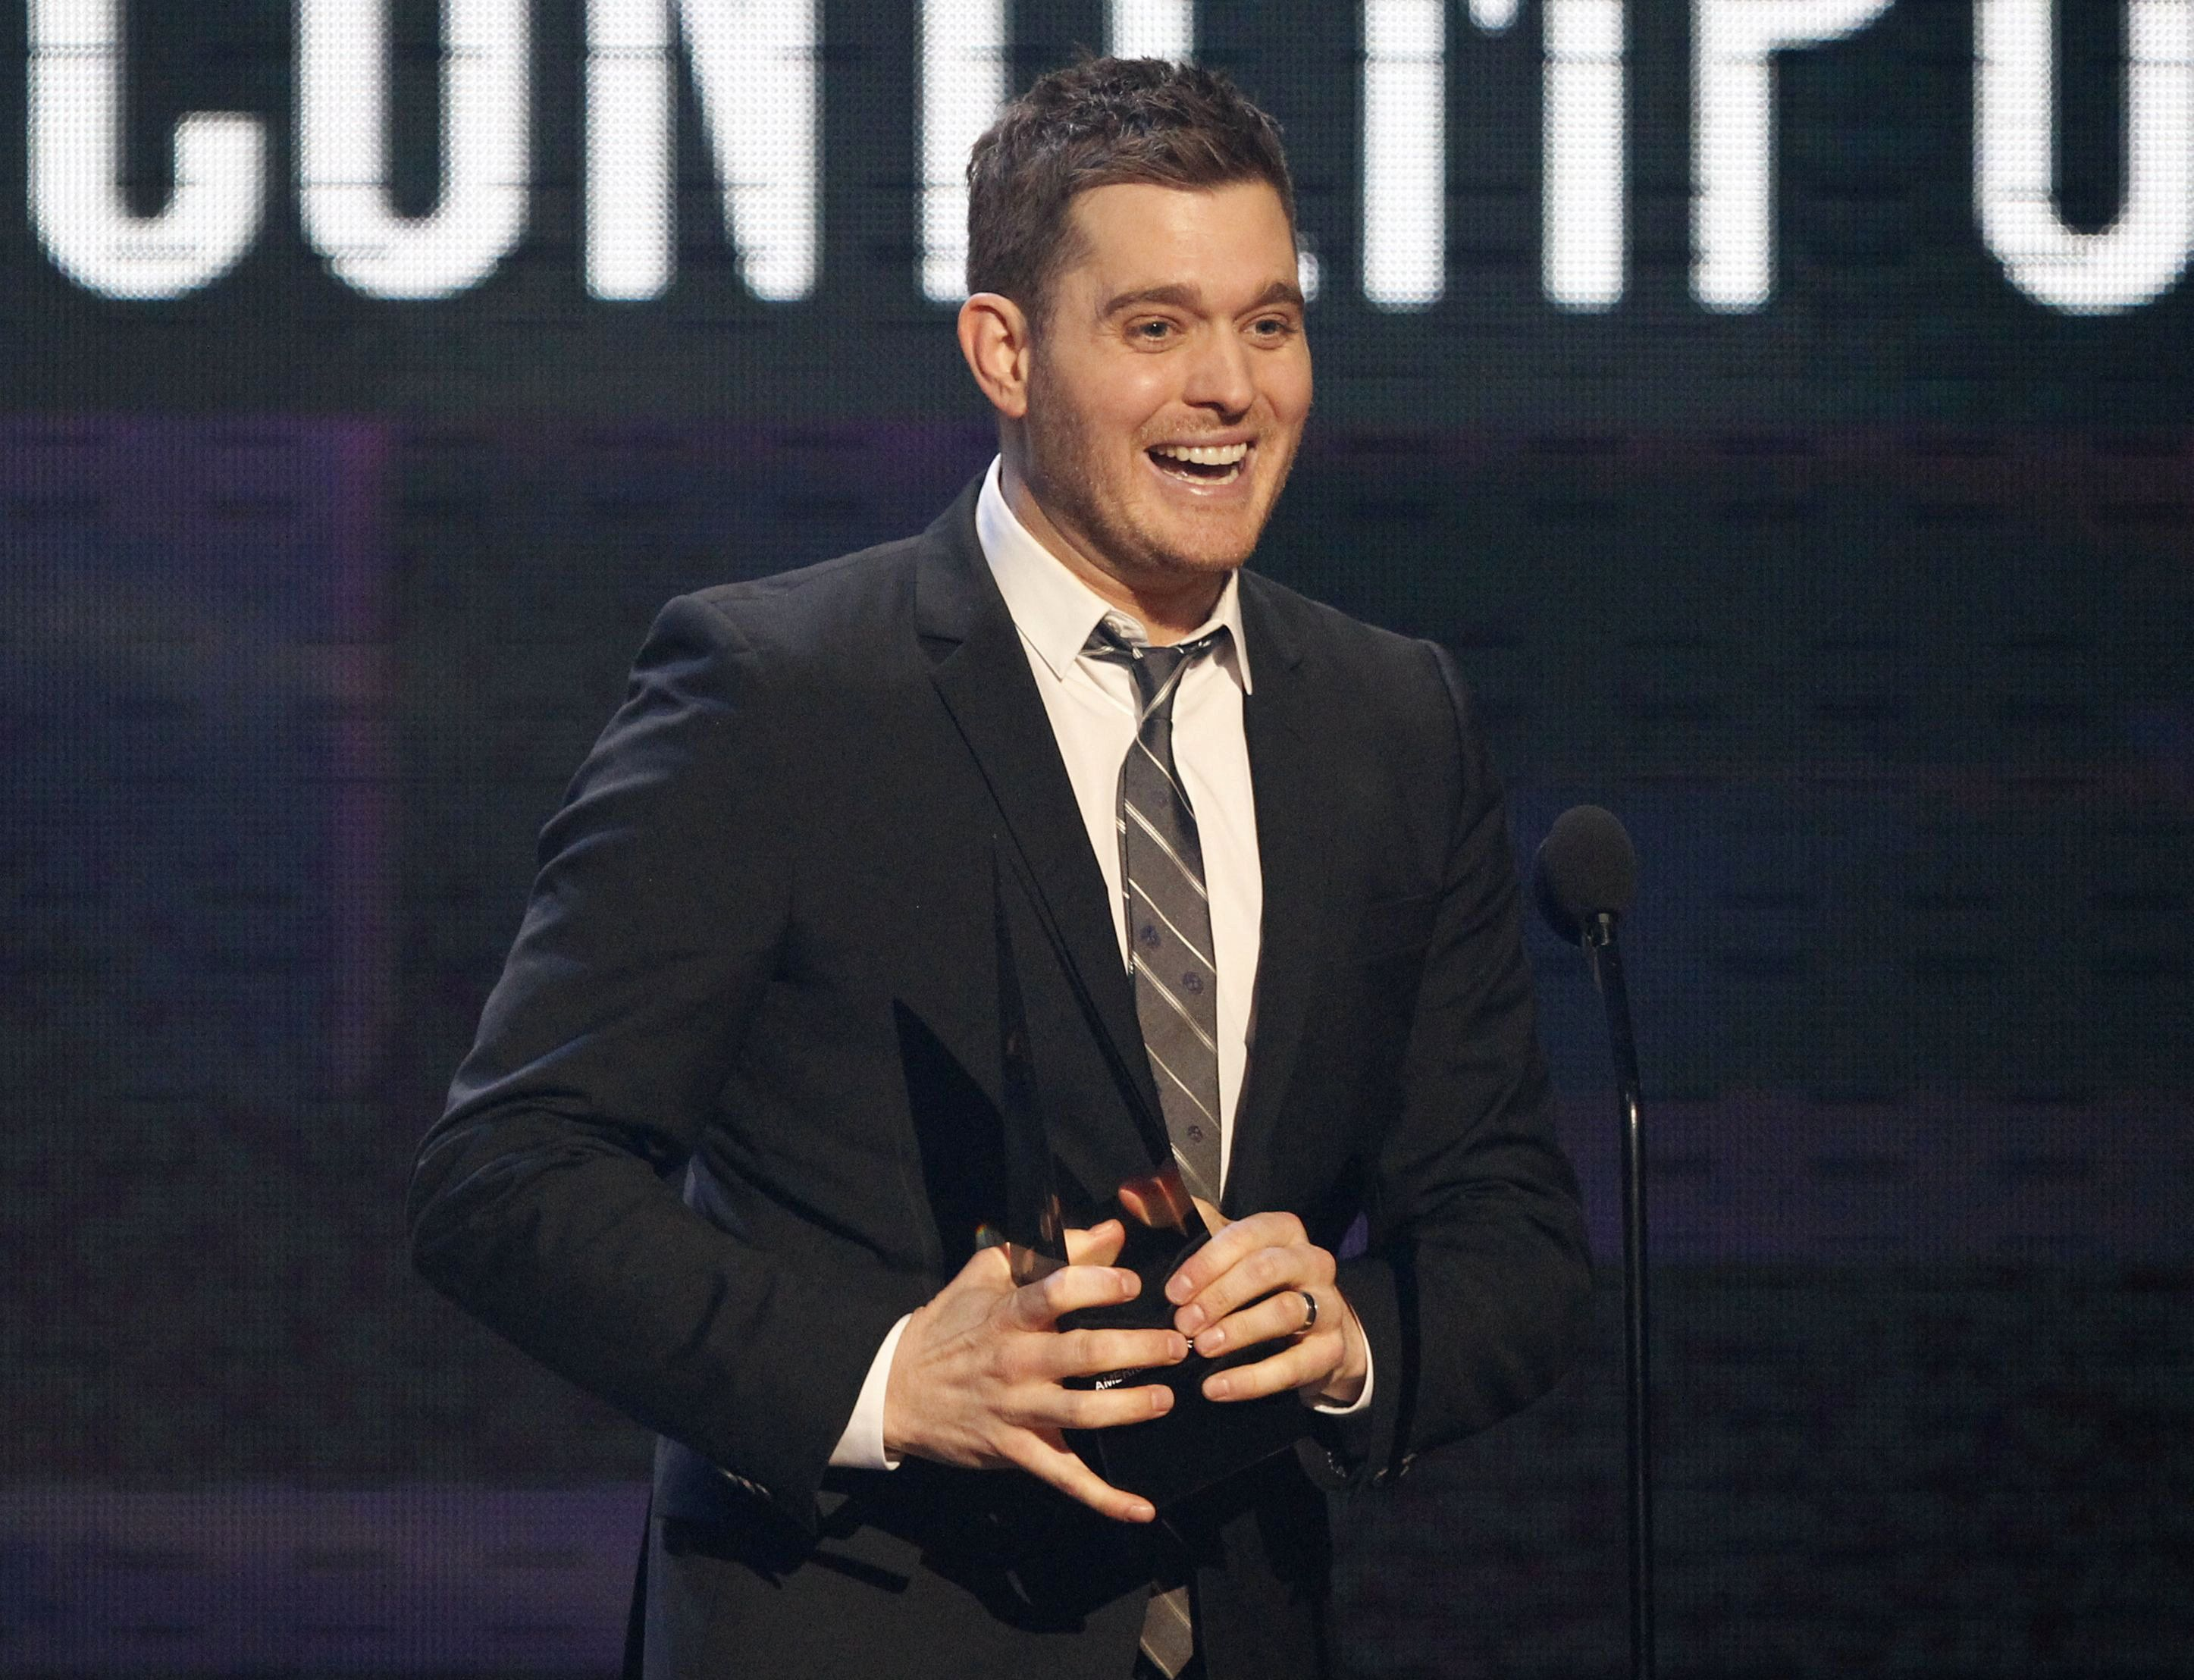 Canadian singer Michael Buble accepts the award for Favorite Adult Contemporary Artist at the 2010 American Music Awards in Los Angeles November 21, 2010.    REUTERS/Mario Anzuoni (UNITED STATES - Tags: ENTERTAINMENT) (AMA-SHOW)